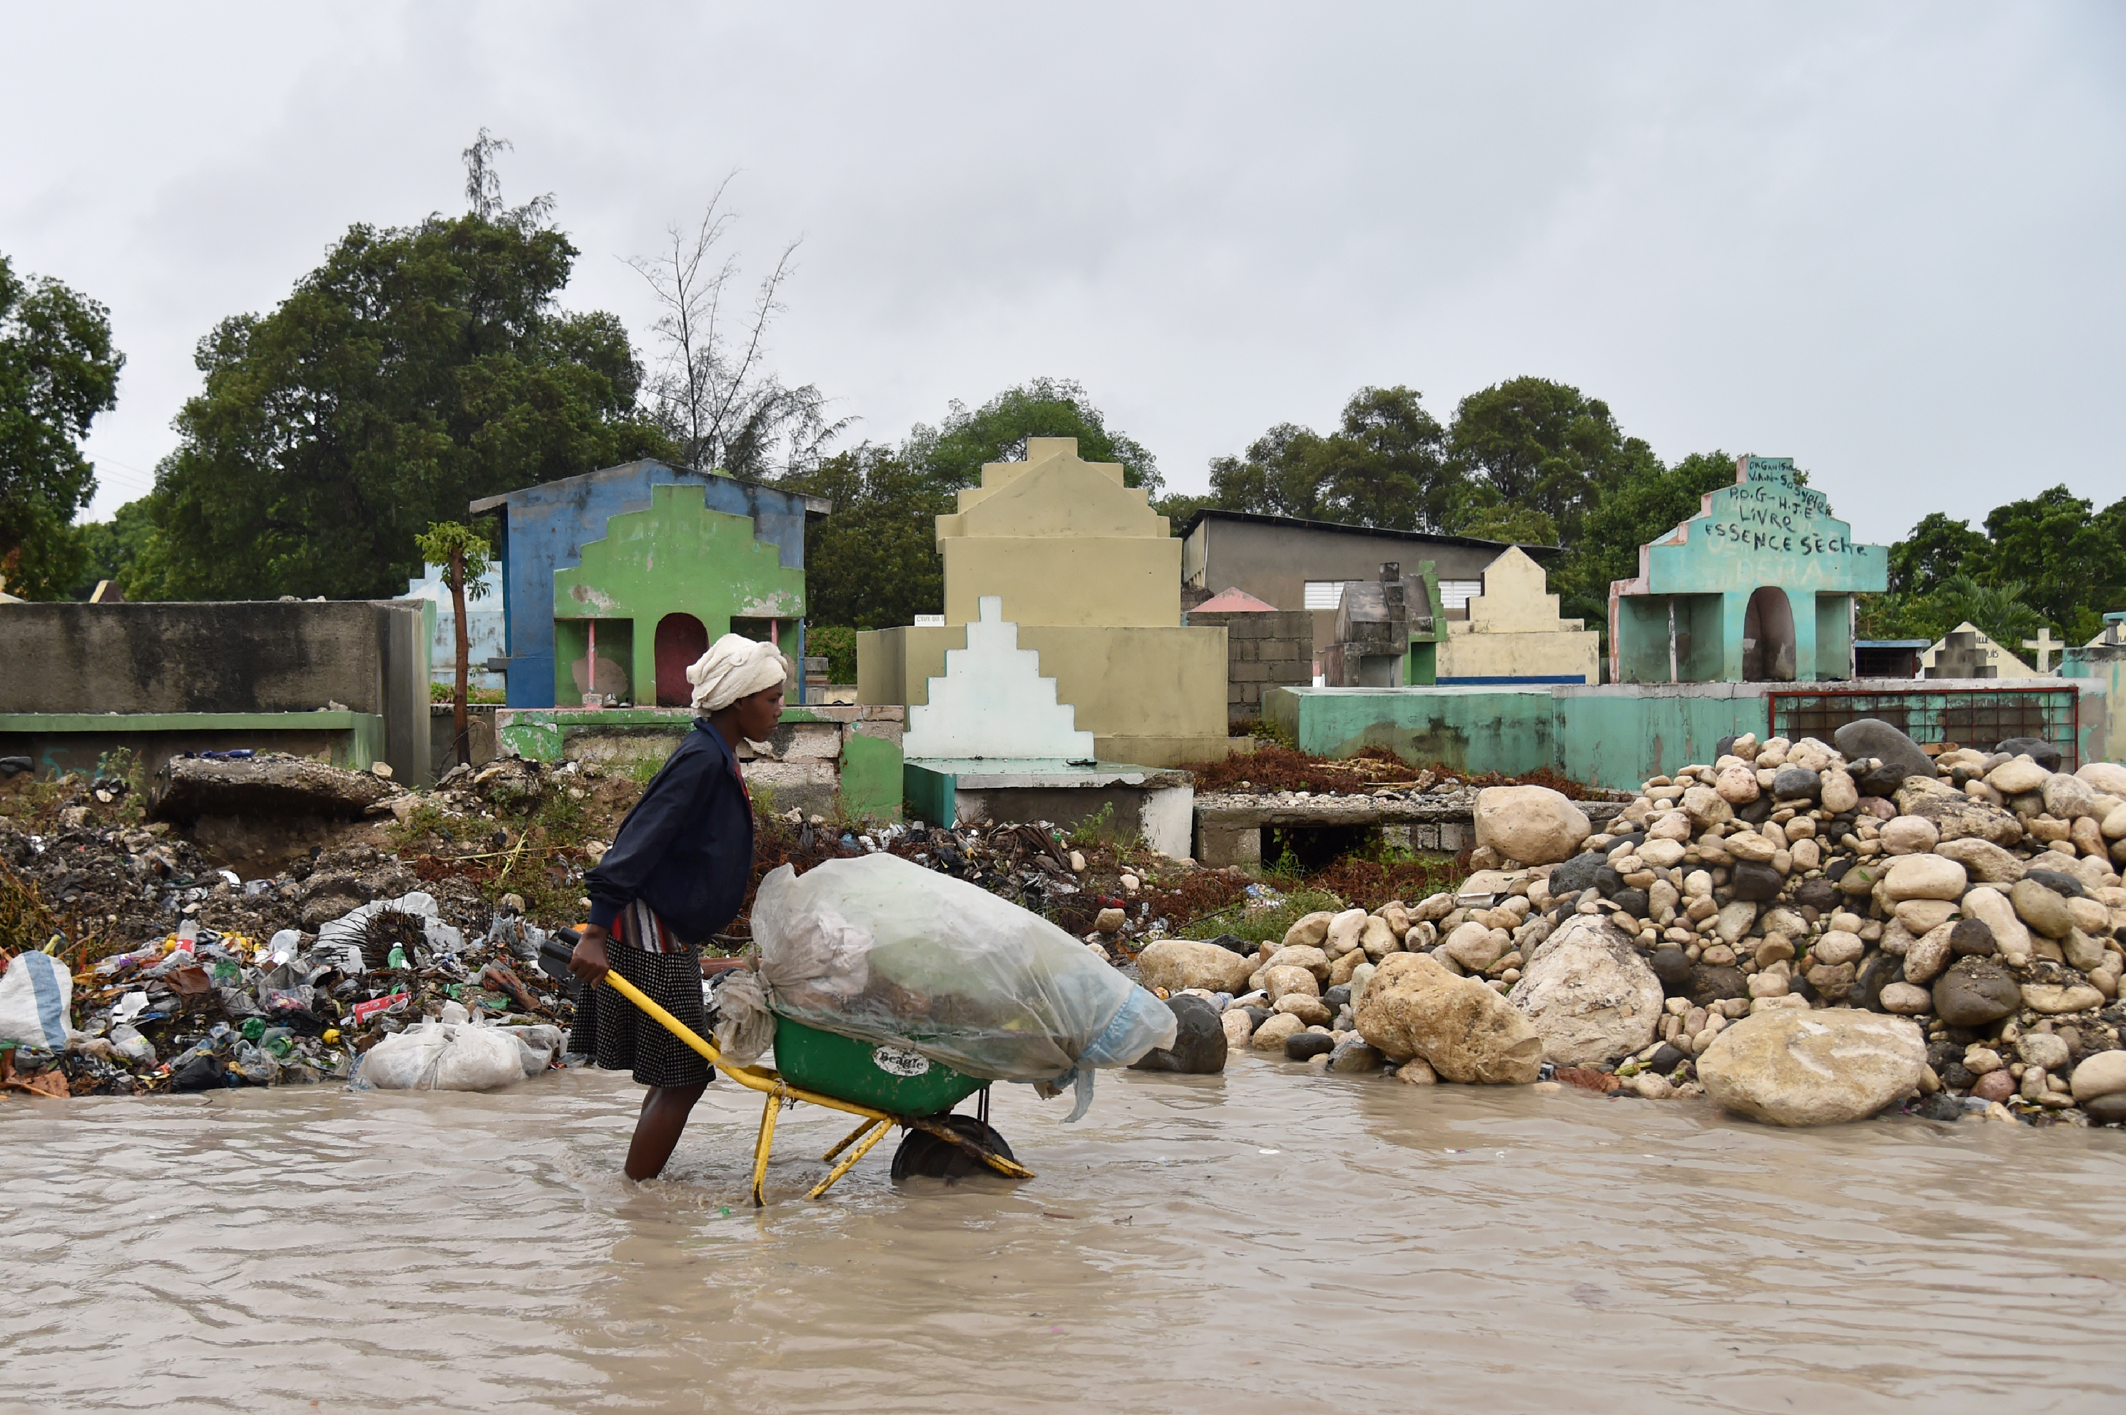 c_Hector-Retamal_AFP__A_woman_pushes_a_wheel_barrel_through_high_waters_in_Haiti.jpeg